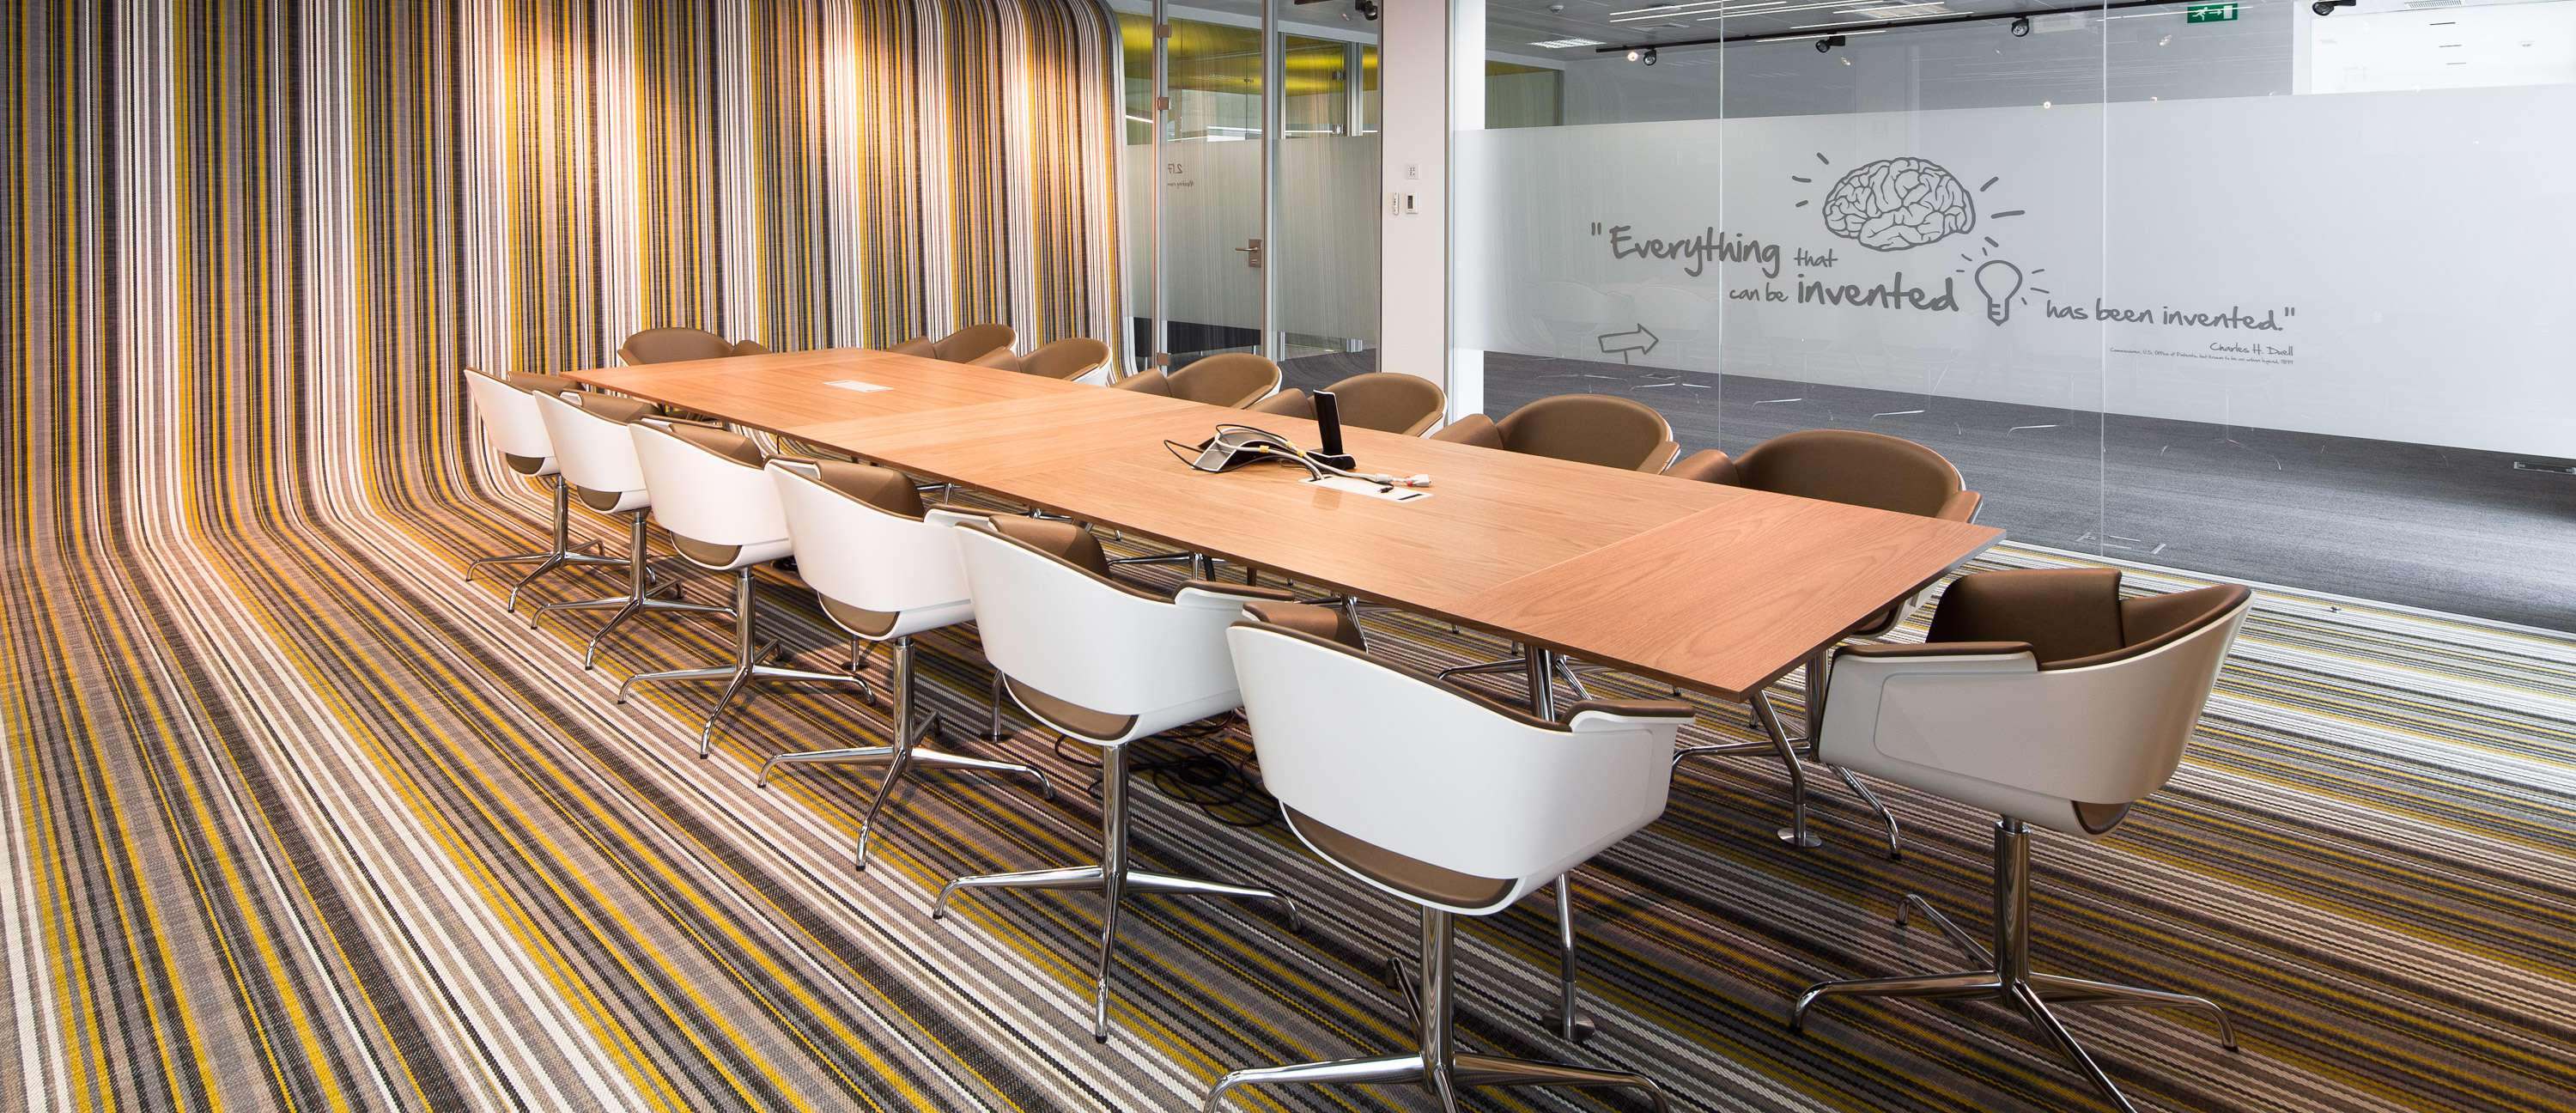 Bolon flooring in the office of Fraunhofer Office in Porto, Portugal